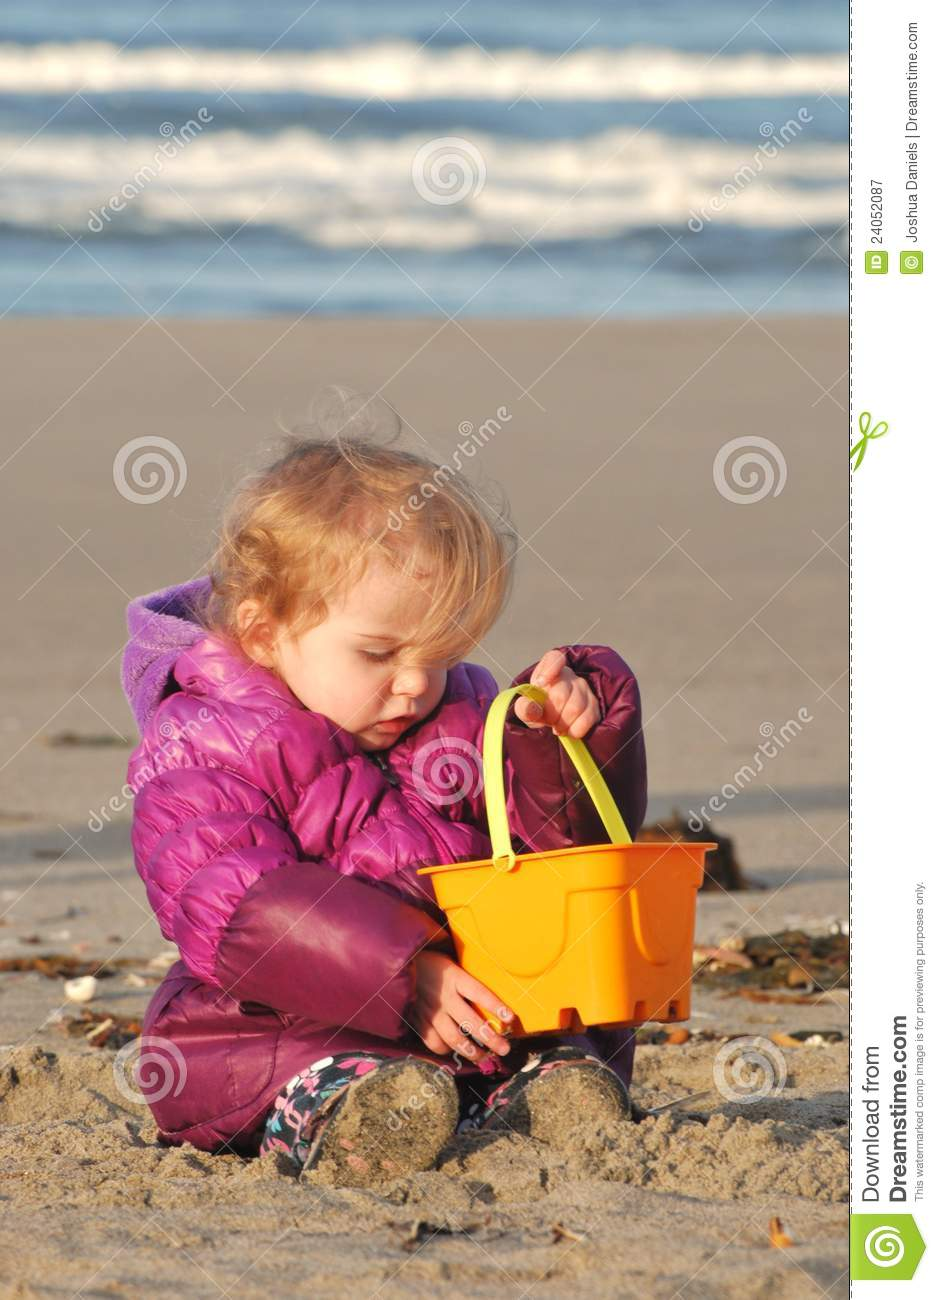 A toddler plays with a sand pail at the beach